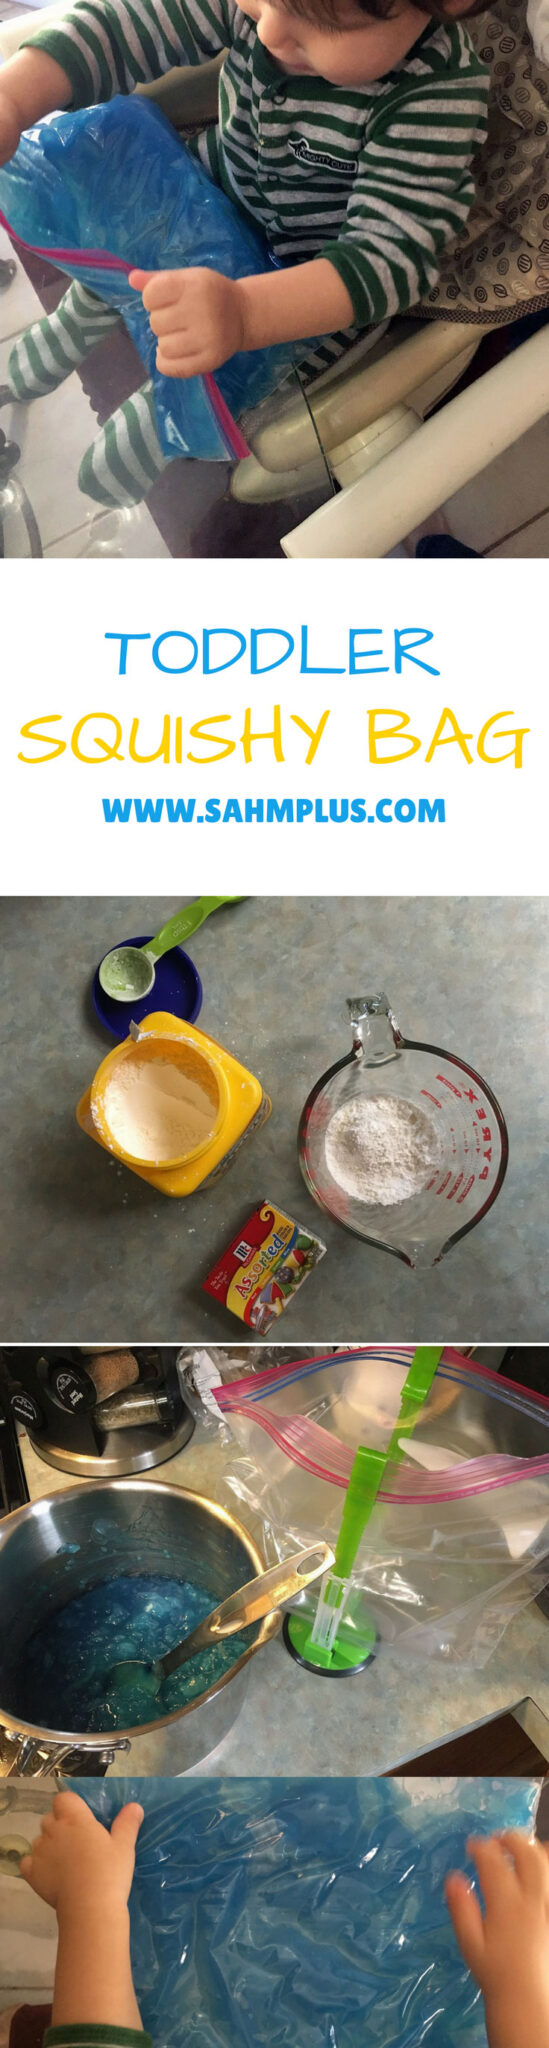 Toddler squishy bag recipe and instructions. The activity turned into a mommy therapy/sensory activity instead of a toddler activity